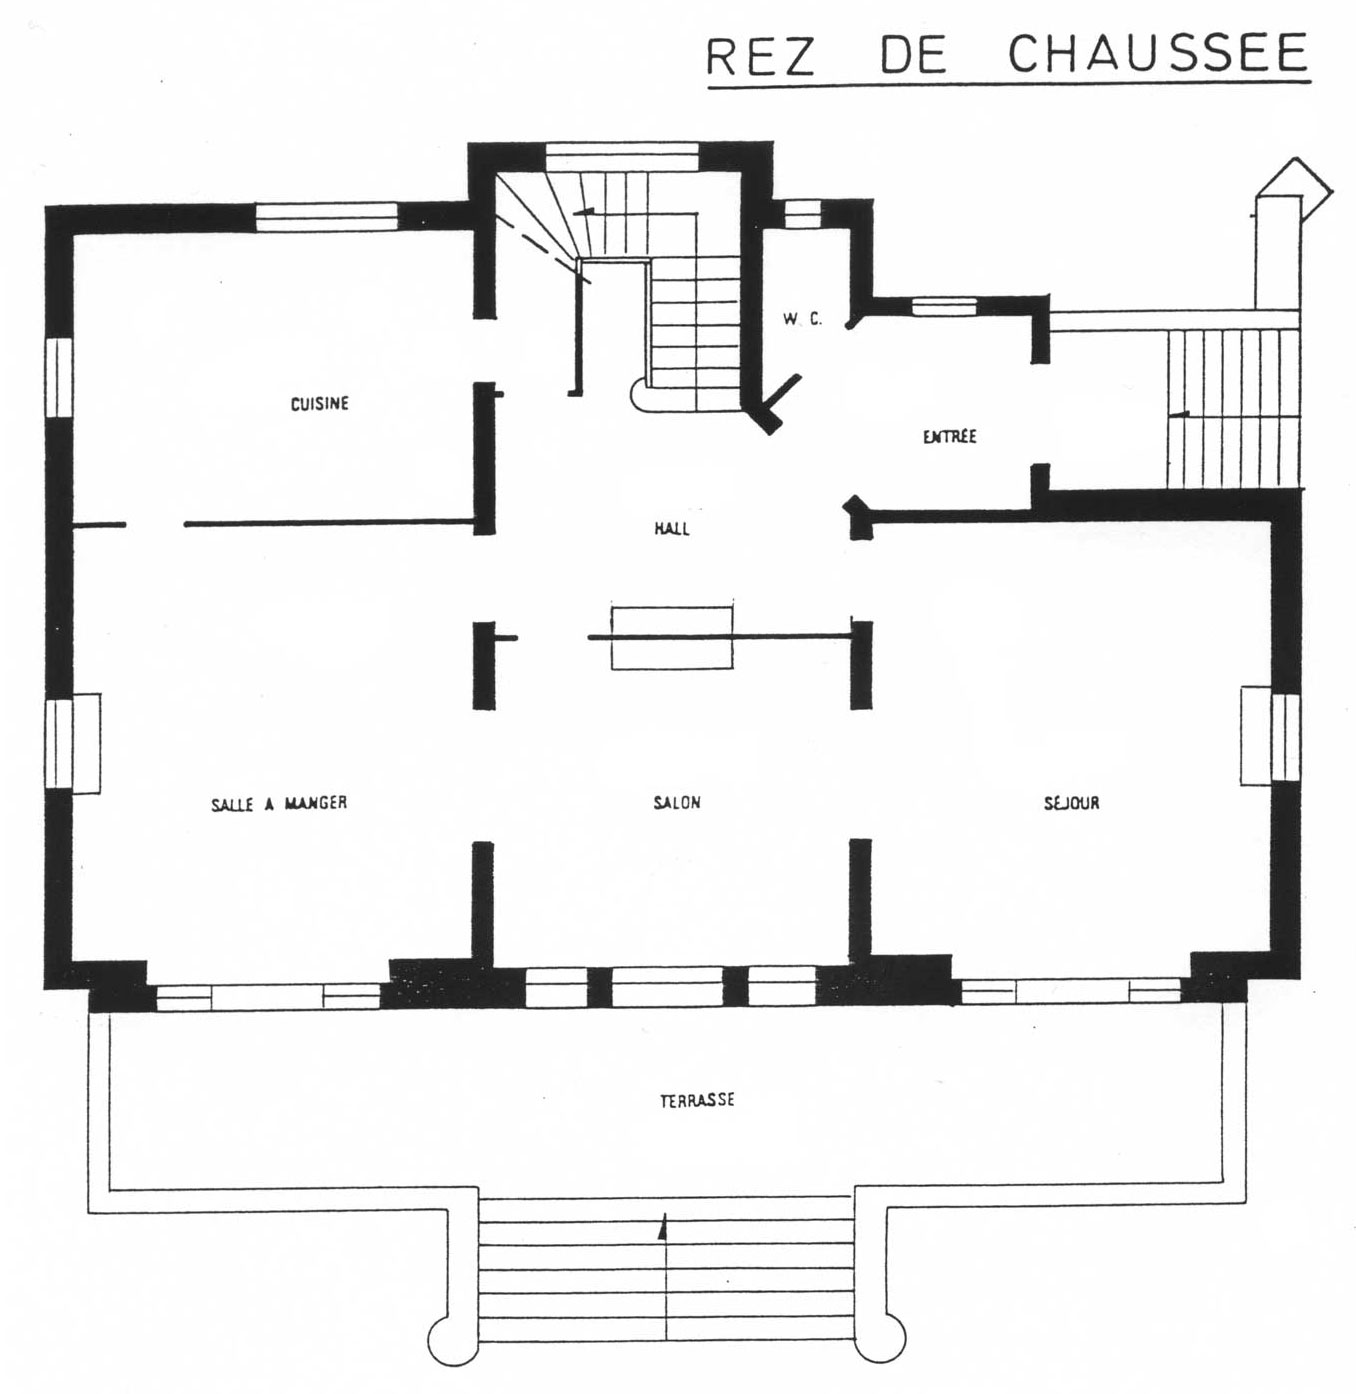 La villa la hubloti re villa berthe for Plan de maison interieur